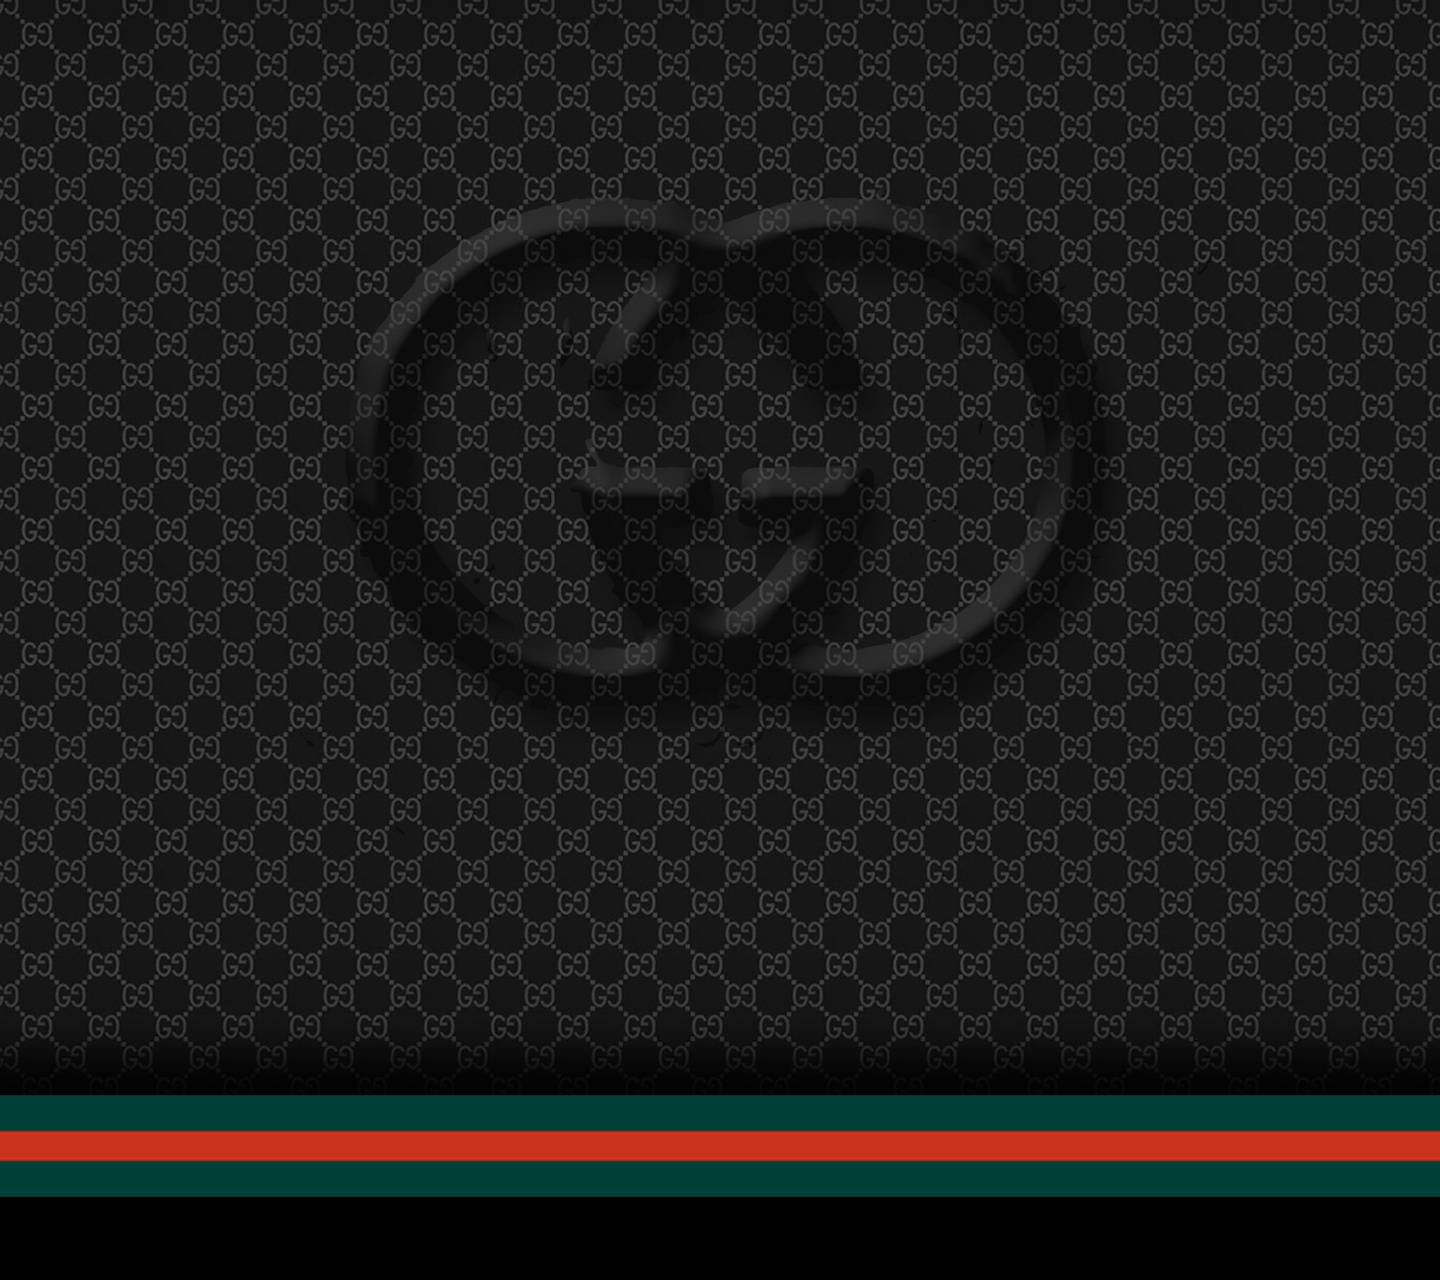 Gucci Logo Wallpaper By Rframos 96 Free On Zedge